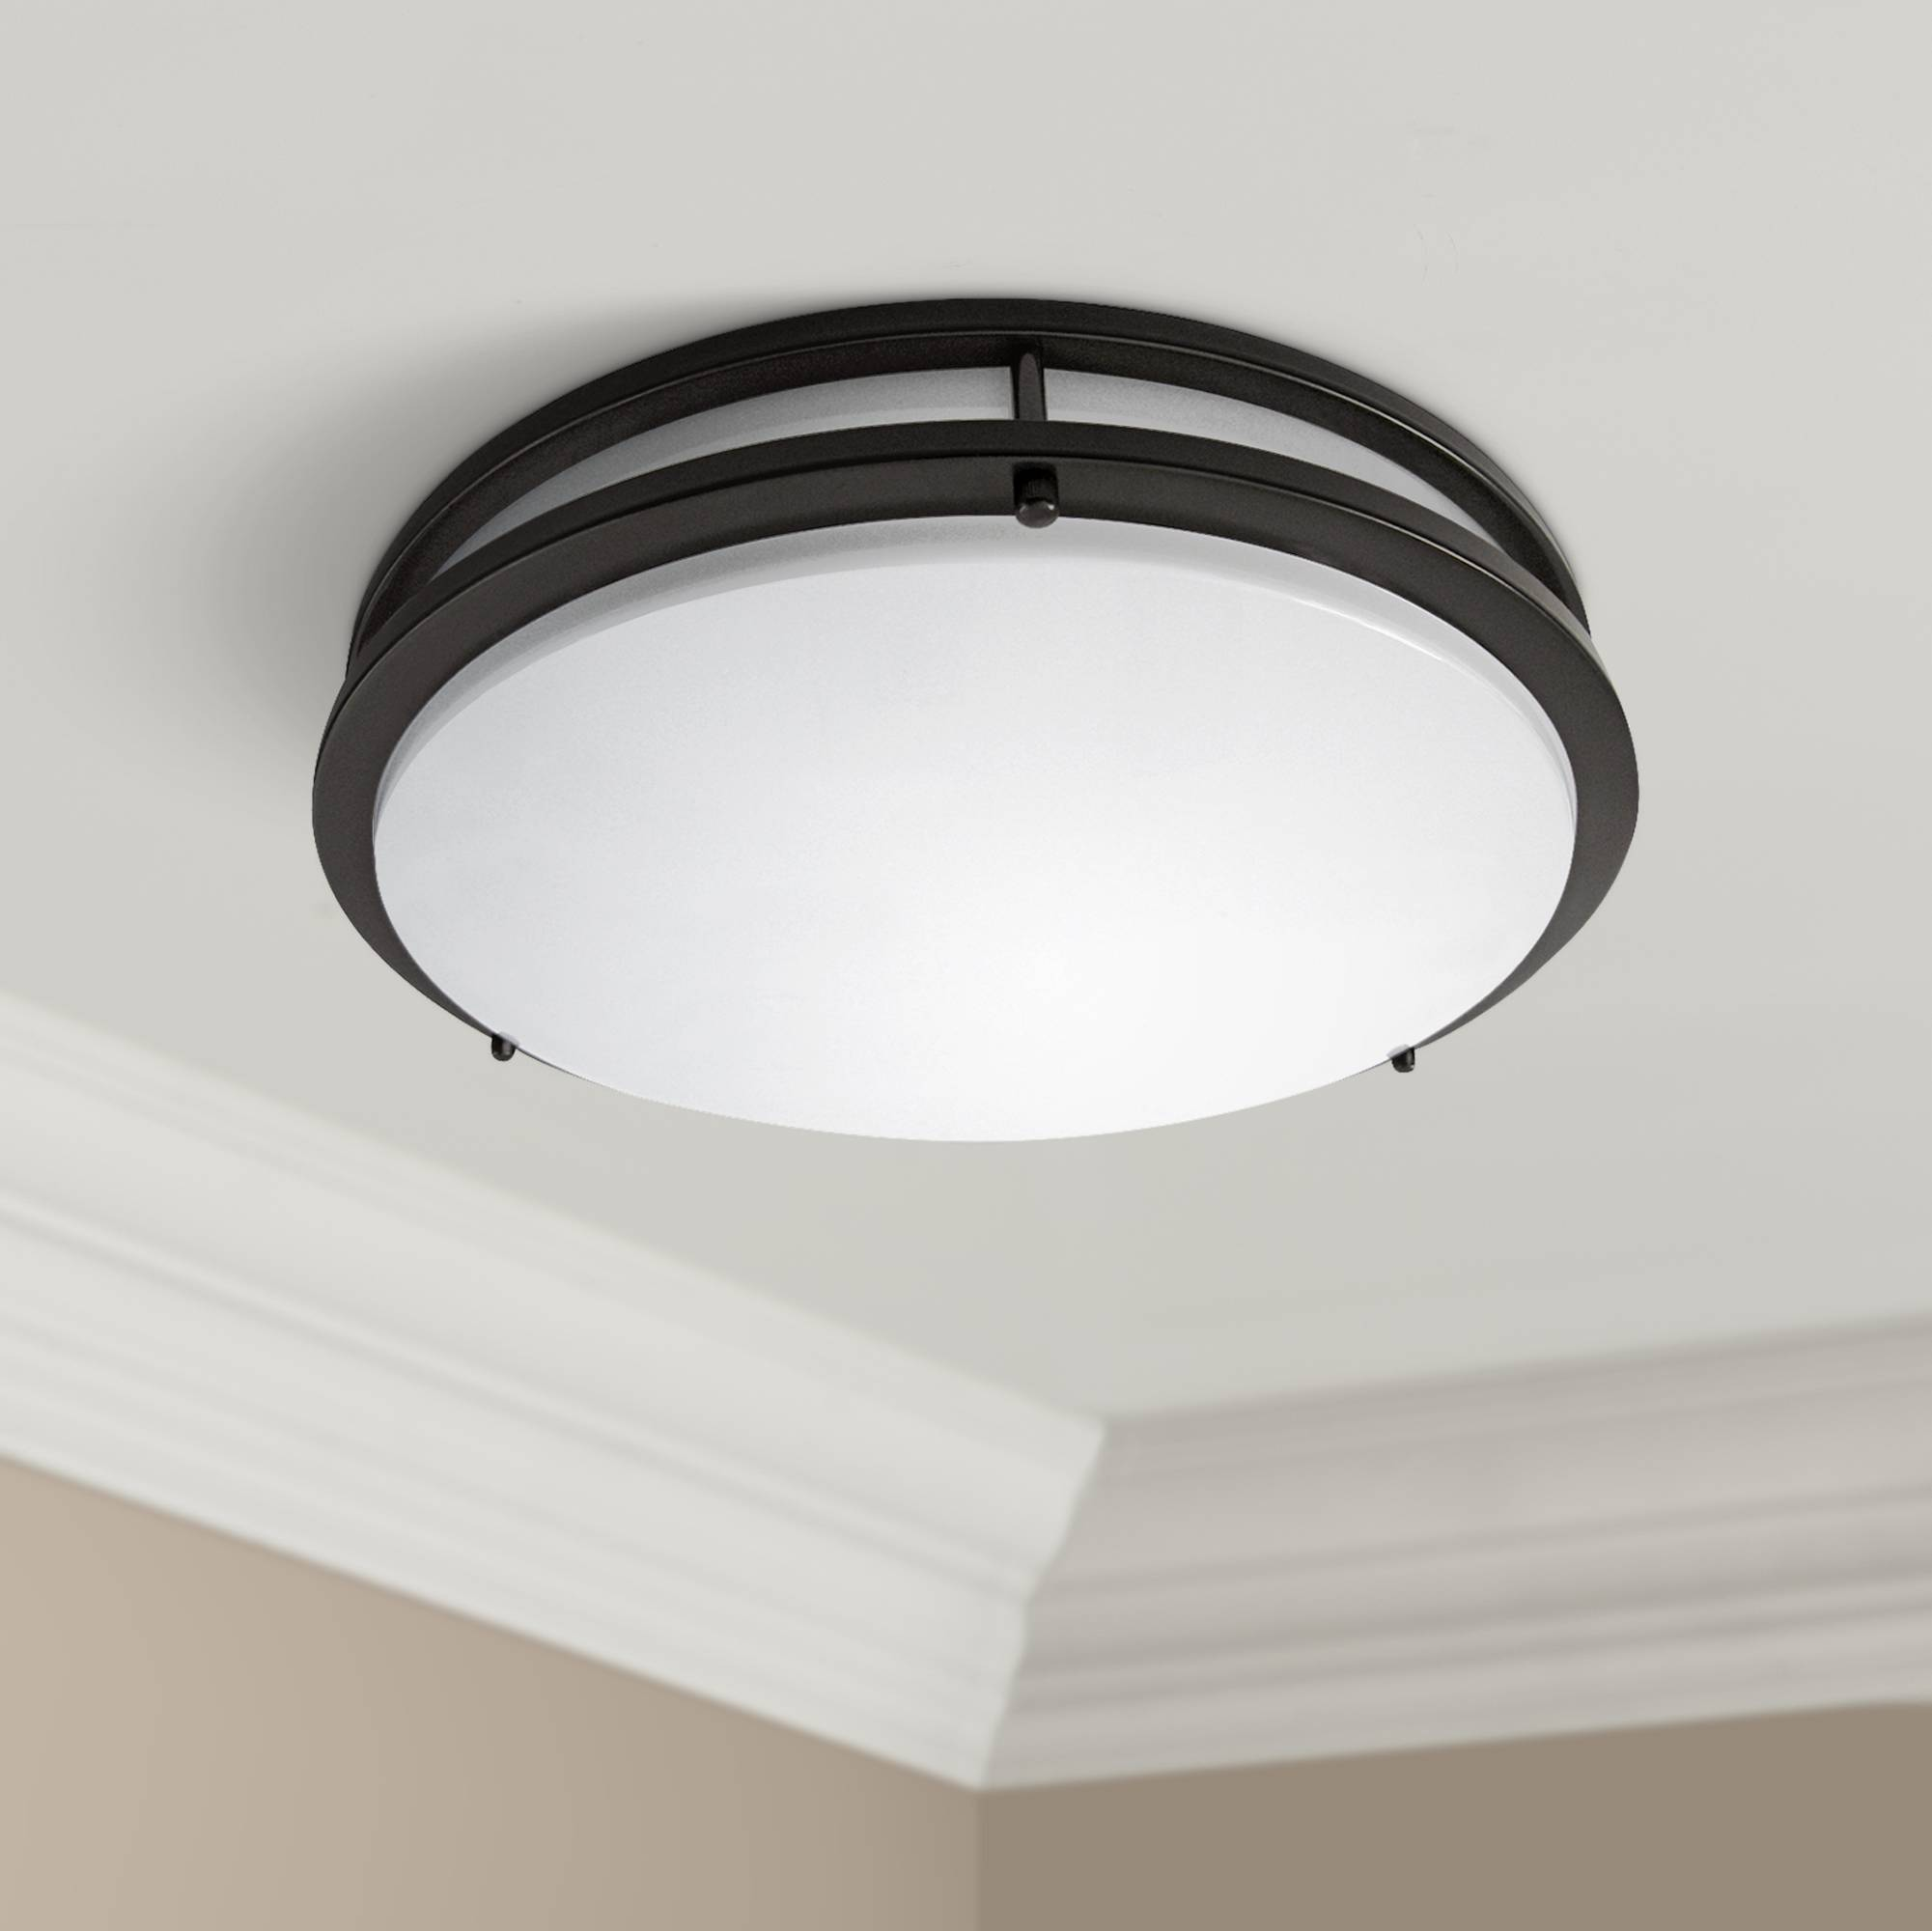 Zaire bronze 10 wide flushmount led ceiling light